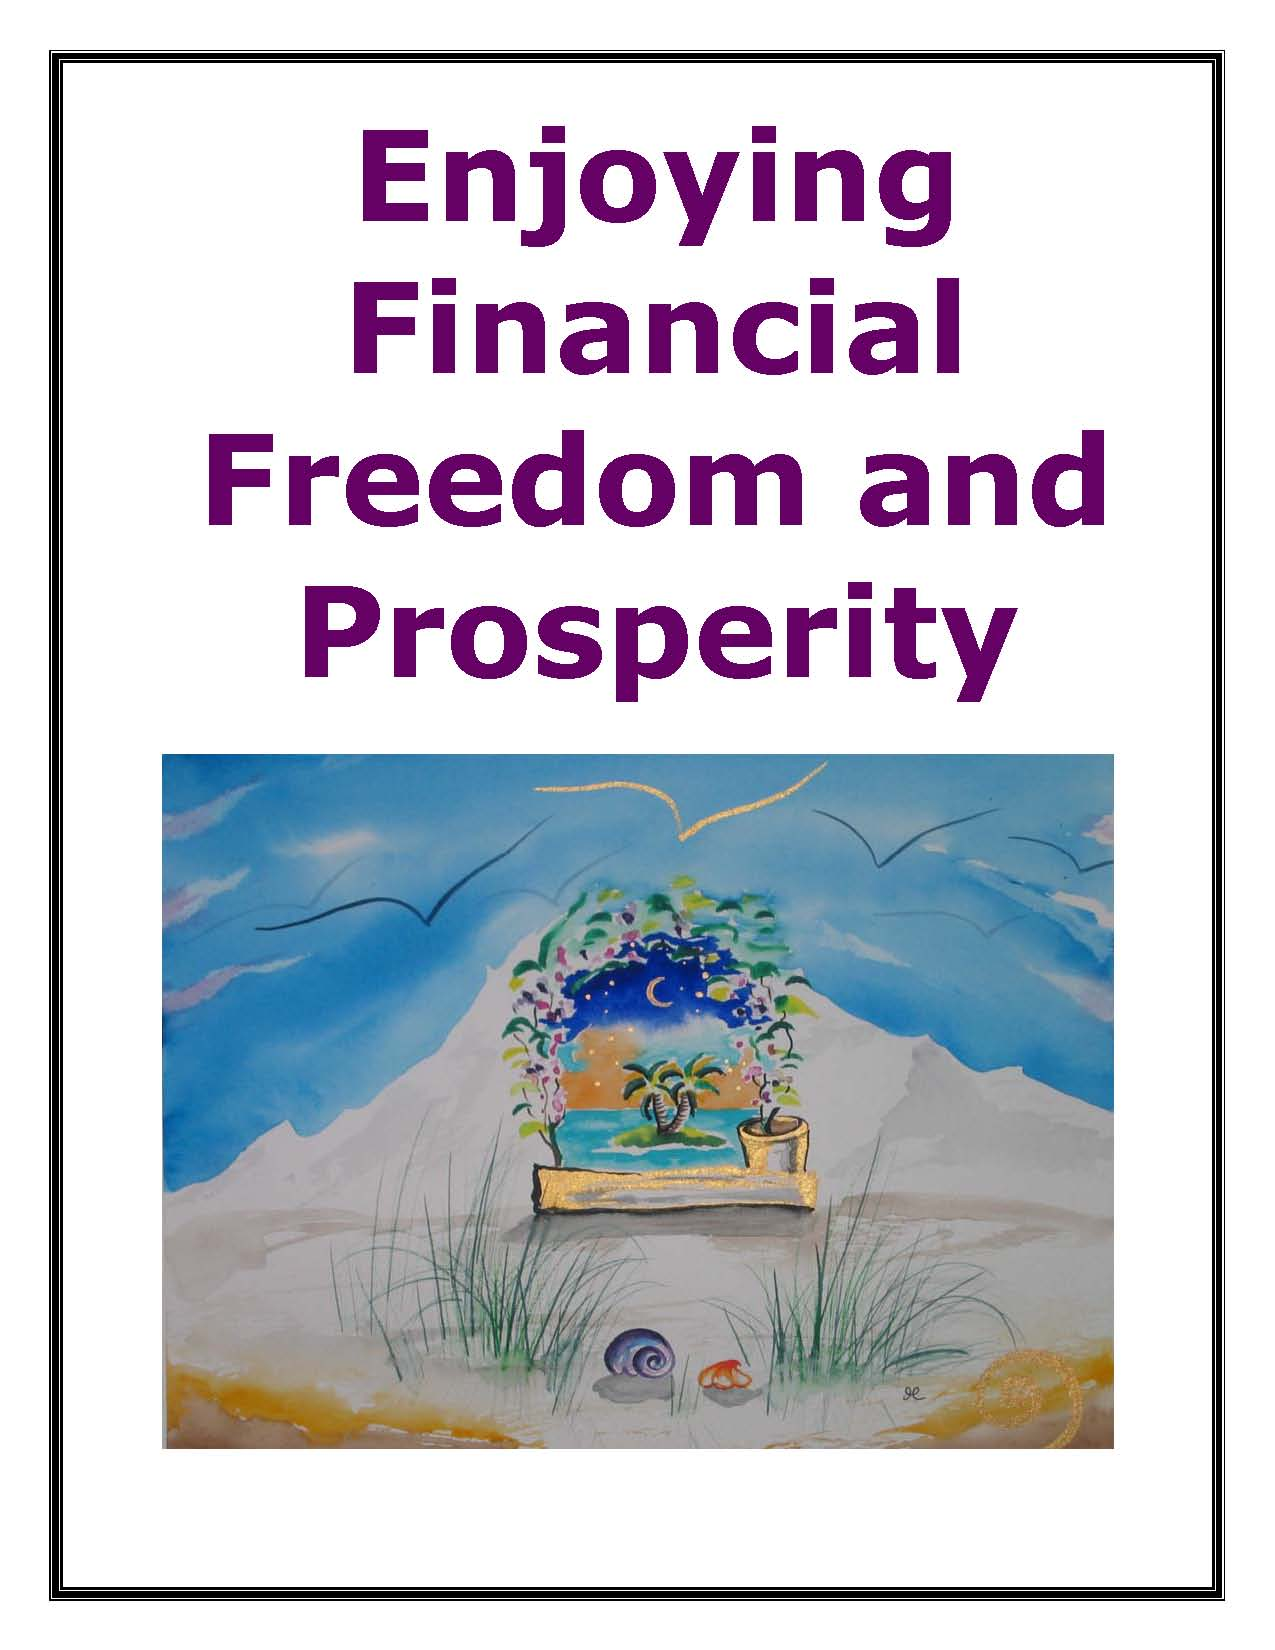 Enjoying Financial Freedom and Prosperity